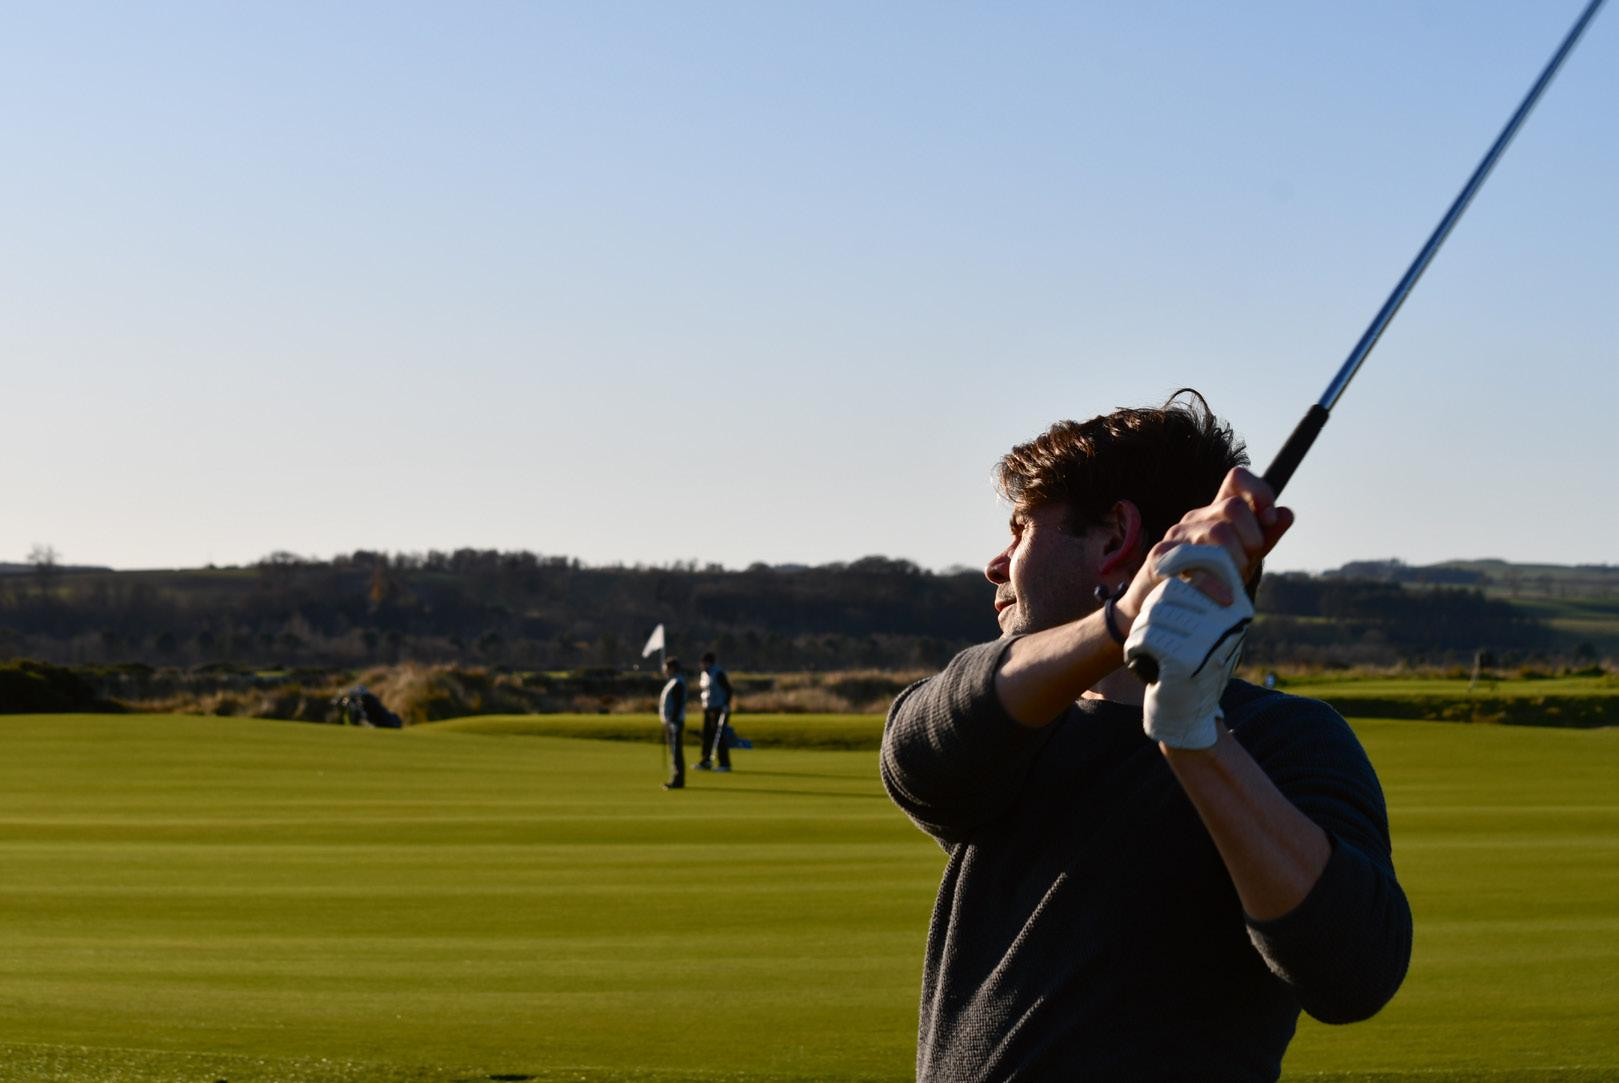 Page 40 of St Andrews Old Course in Reverse Ben Sargent travelled to St Andrews to play The Old Course, the world's most famous links course, in reverse – the way it was regularly played in the 19th century